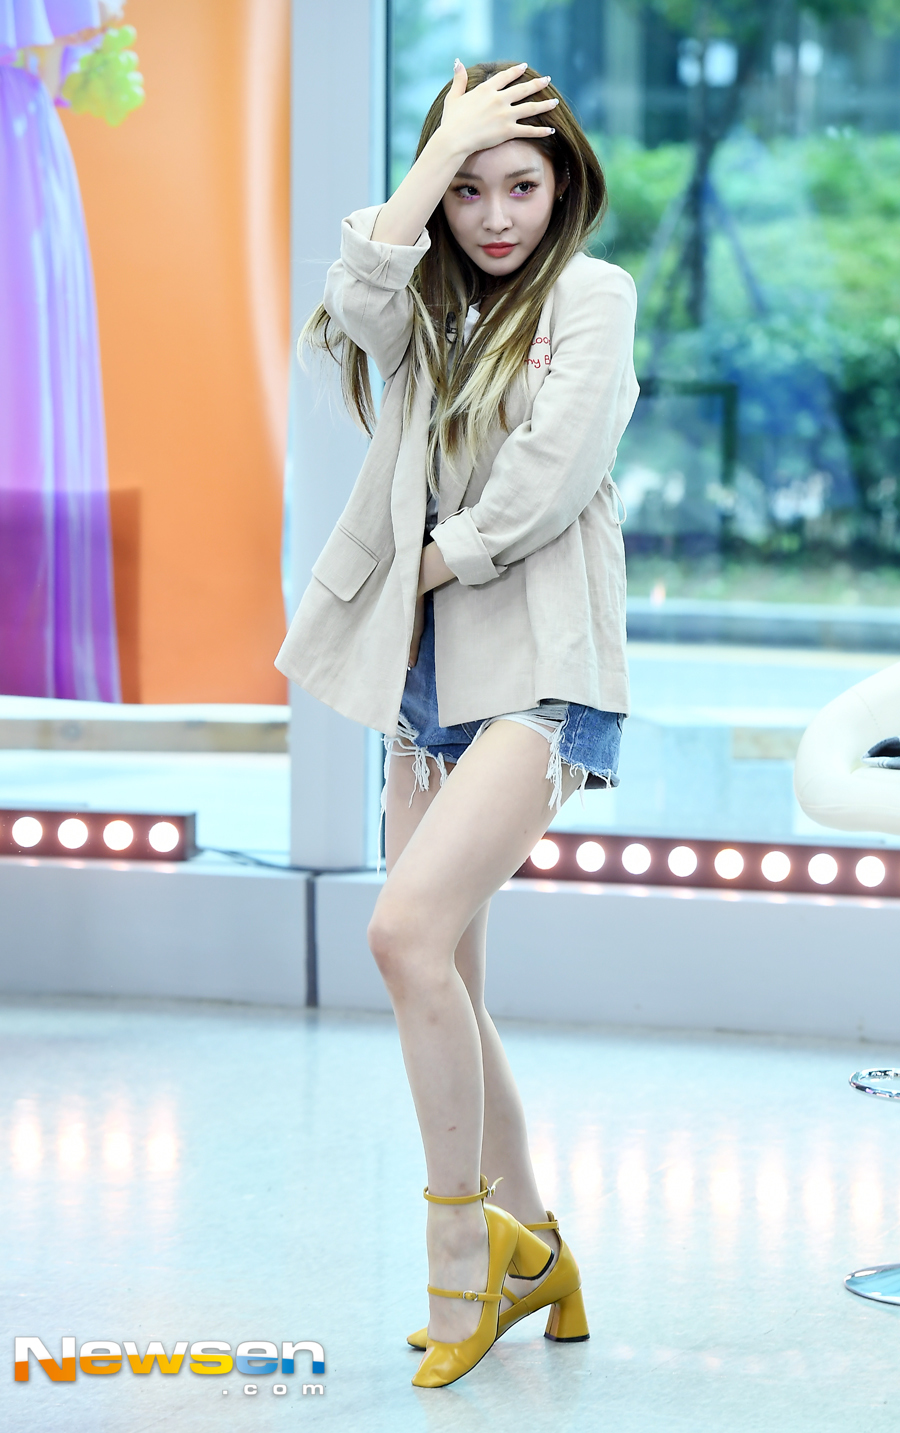 <p>Star interview asking tbs fact star singer was held in Sangam-dong tbs Open Studio in Mapo Seoul morning on July 24th.</p><p>Im showing off the choreography of the point as we seek for this day.</p>